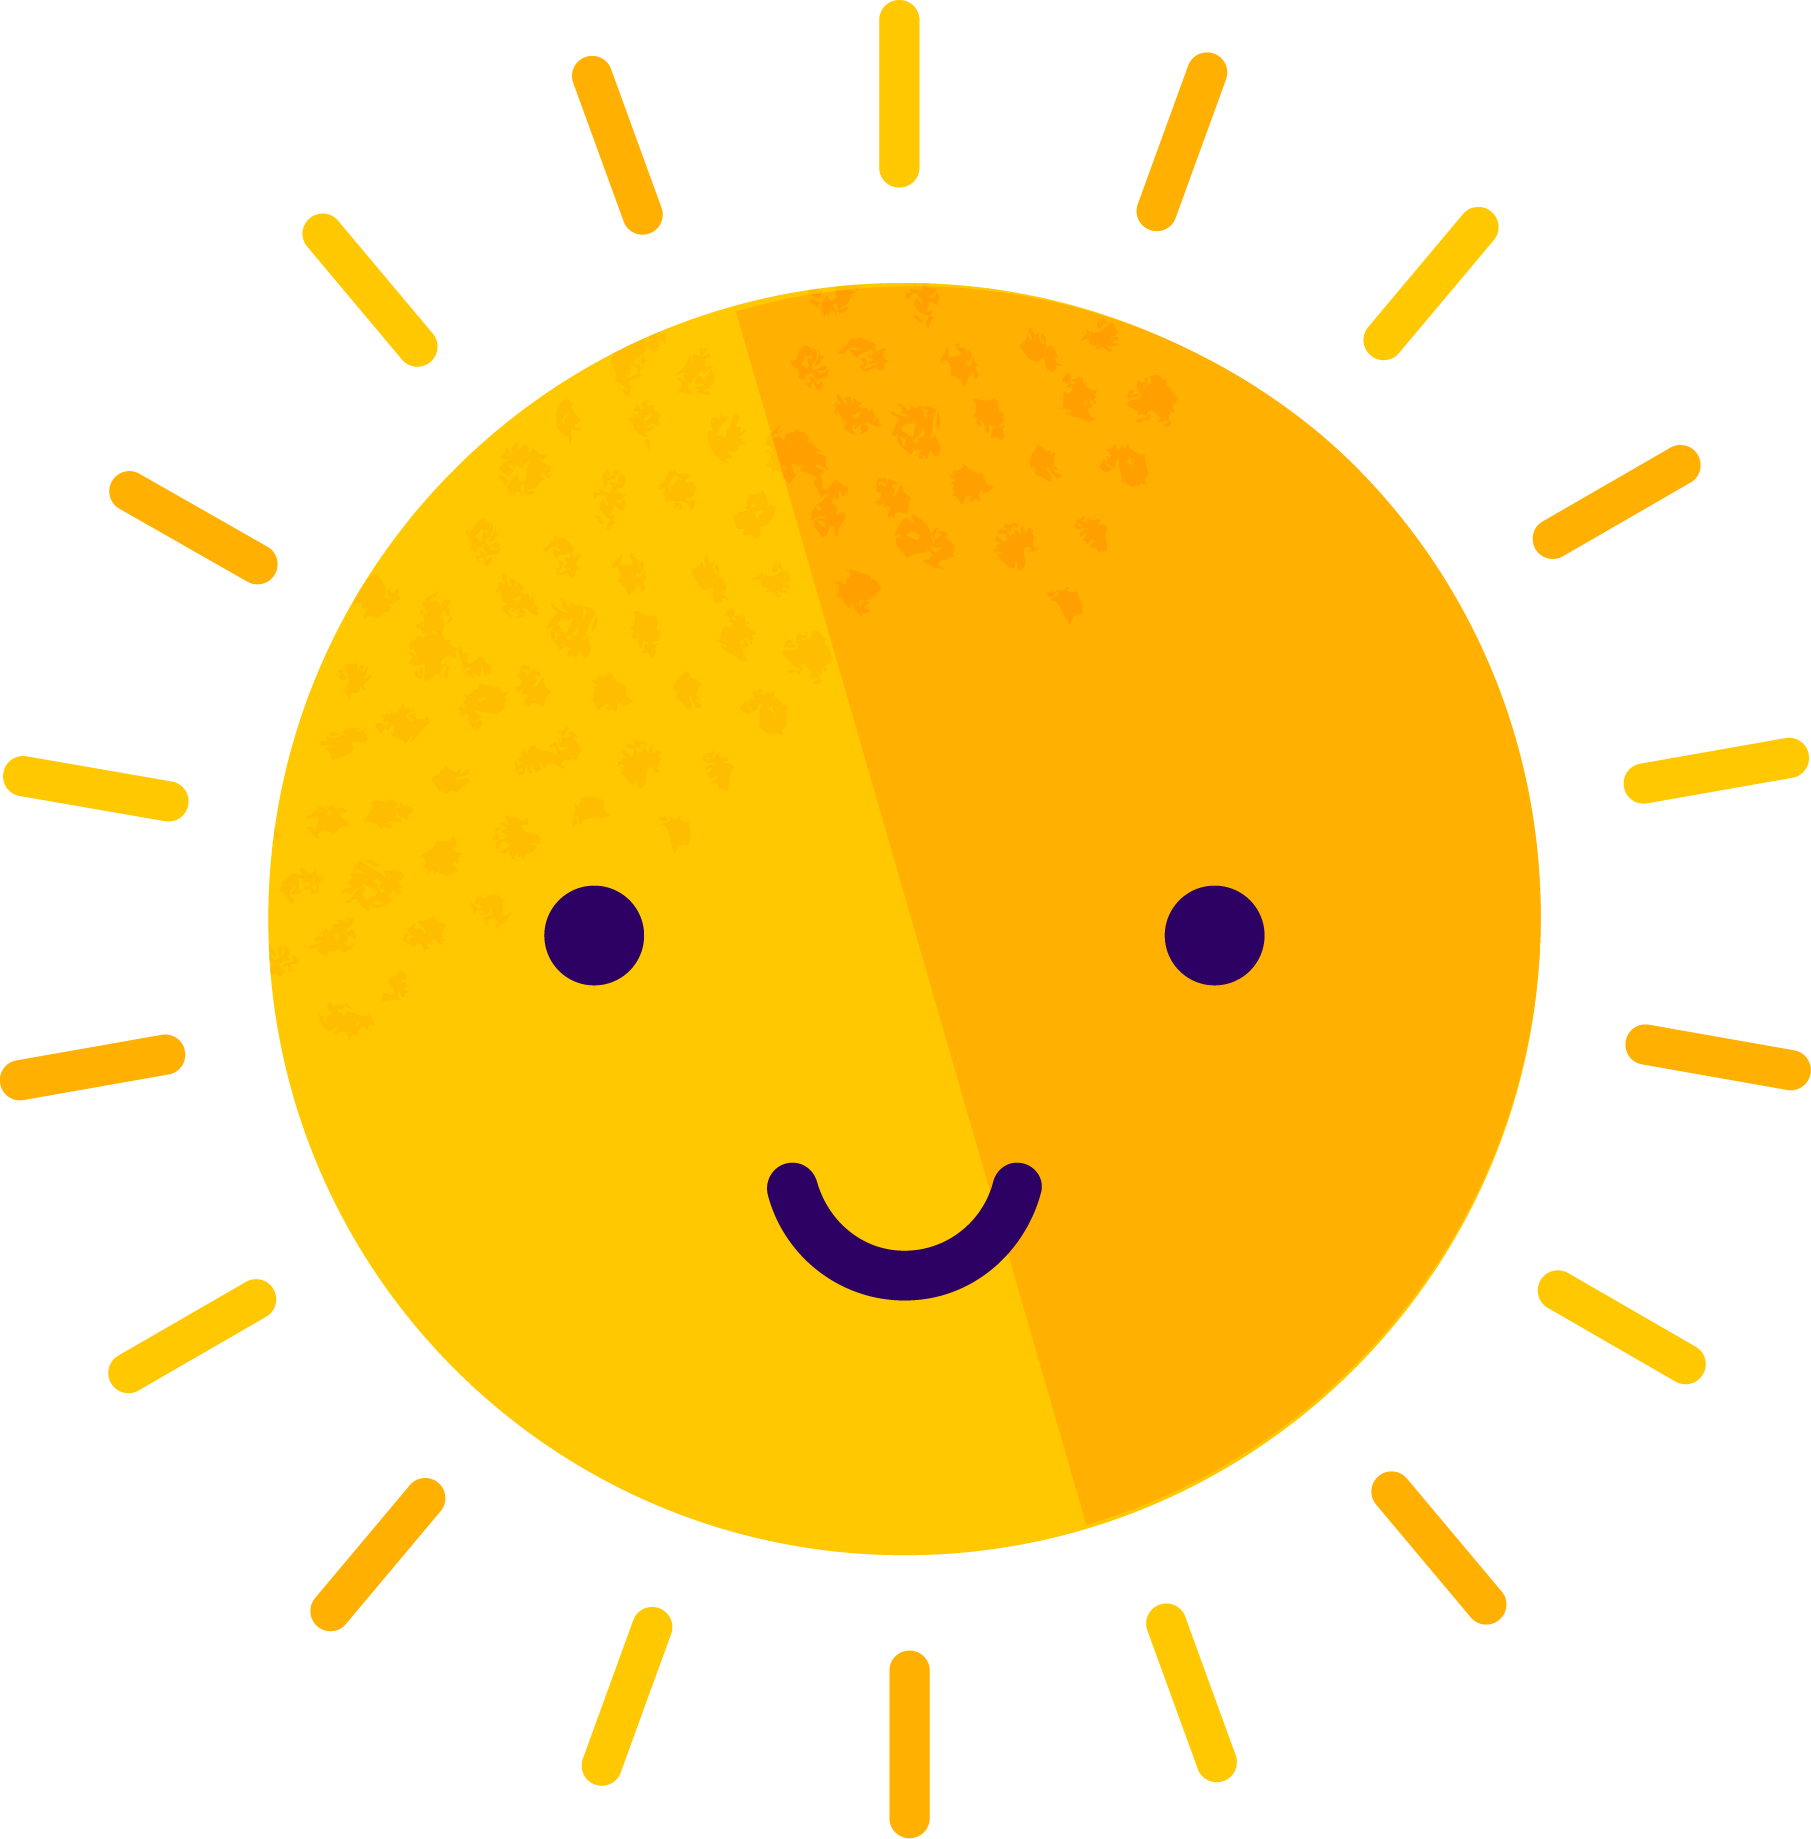 Sun_Happy.png